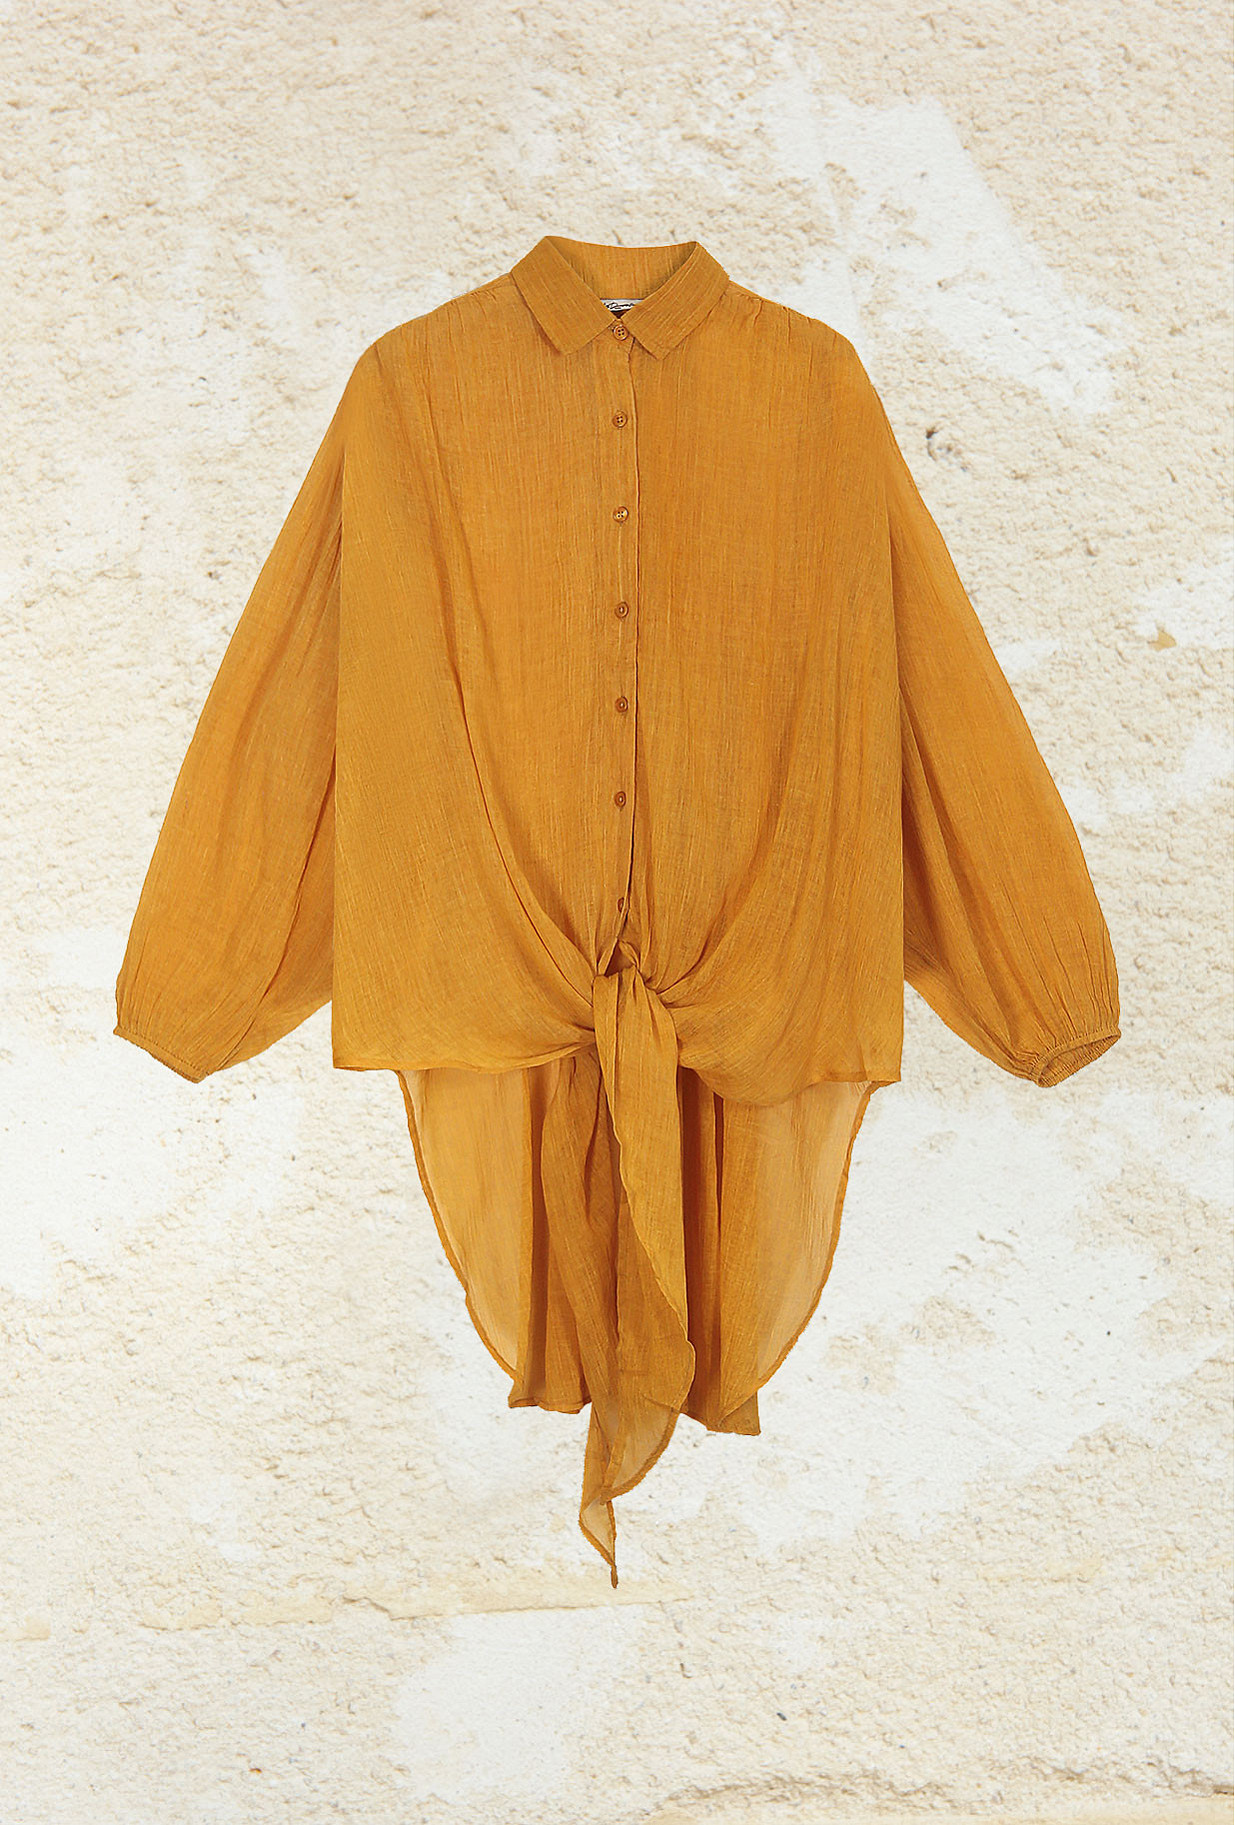 Ocre  Shirt  Chipper Mes demoiselles fashion clothes designer Paris